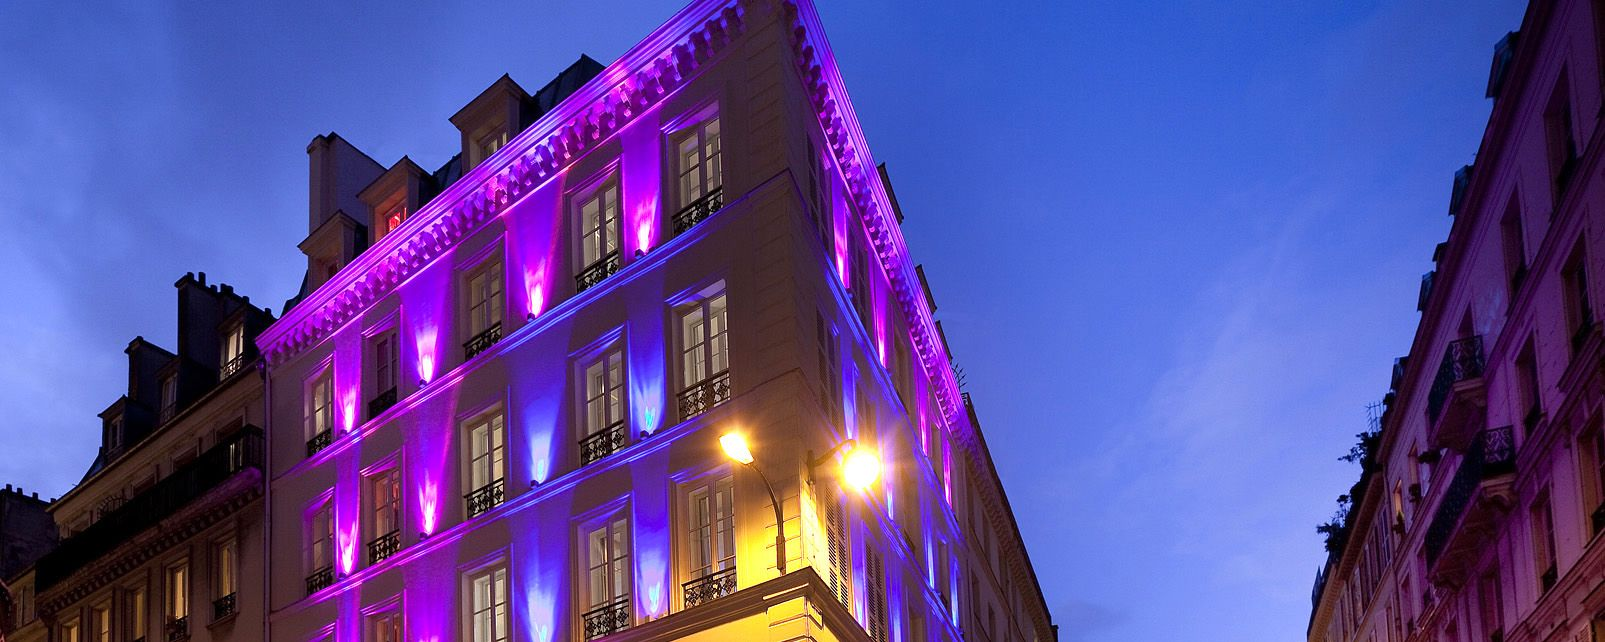 H tel secret de paris design h tel paris france for Hotel paris secret